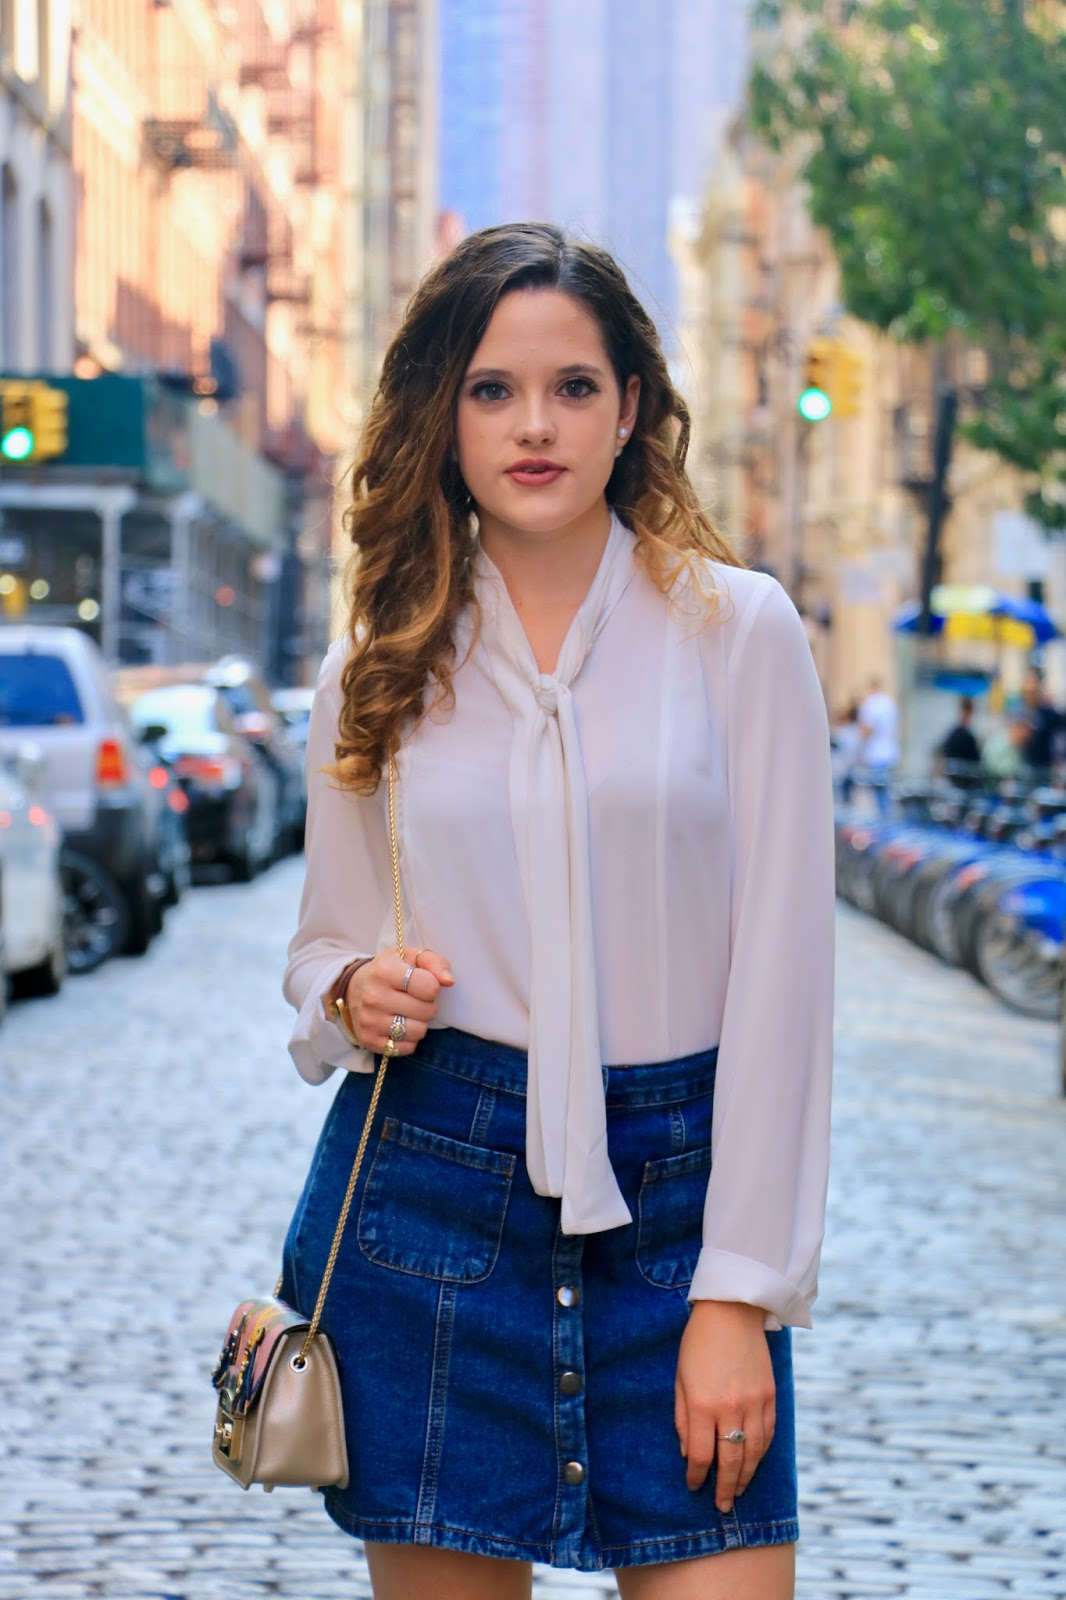 Fashion blogger Kathleen Harper showing how to wear a bow blouse